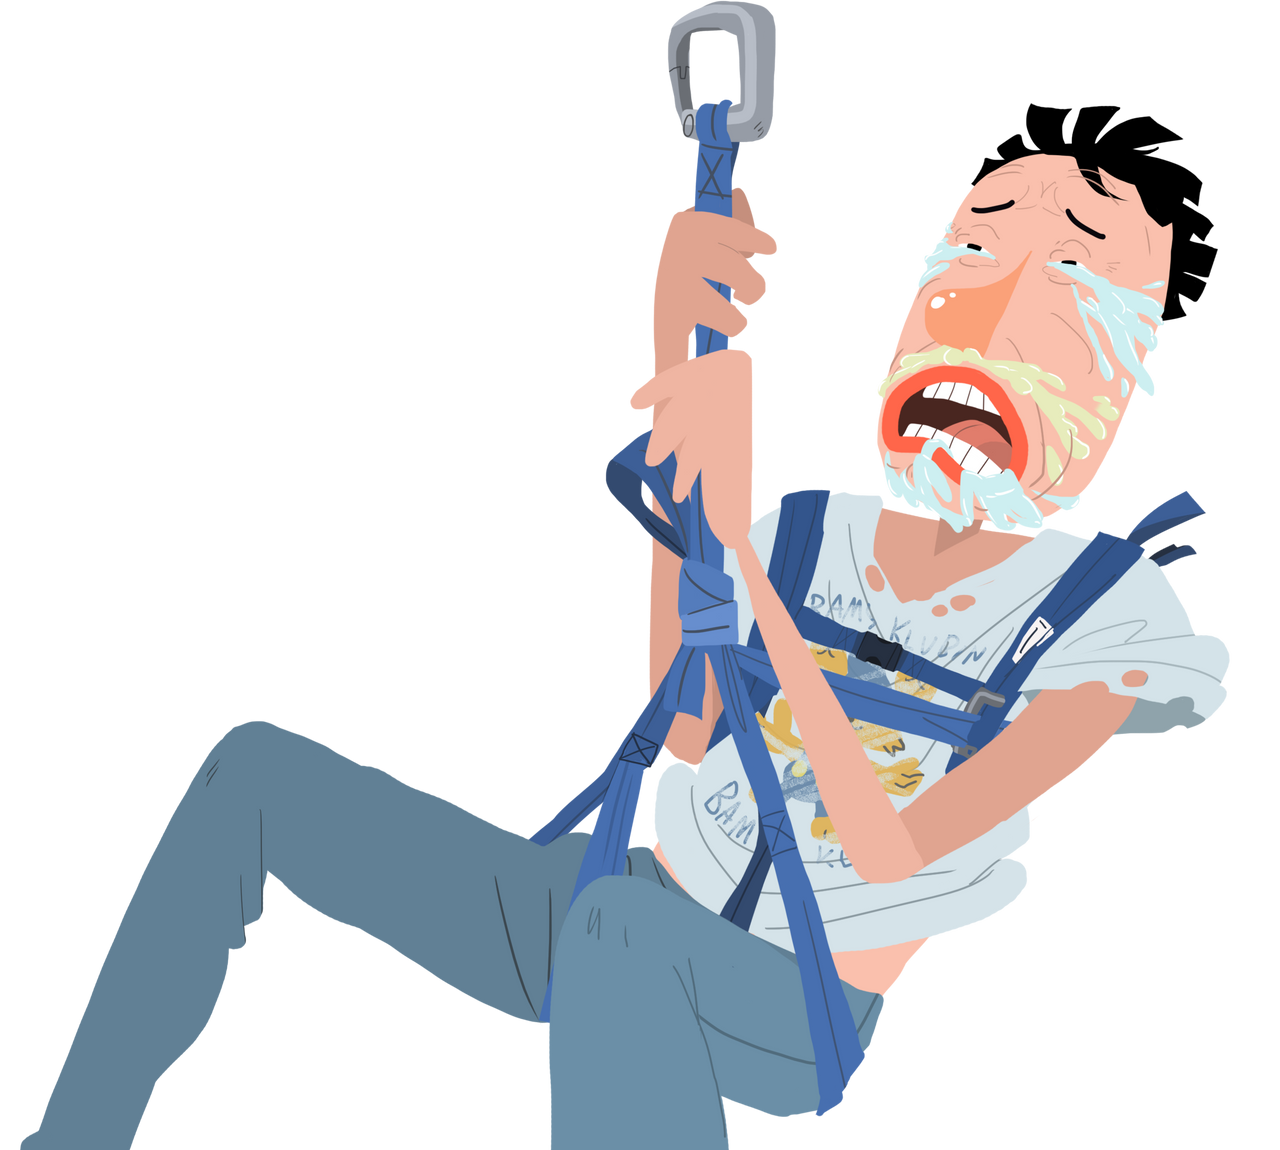 Zip Line Clipart : Zip line terror by bjarnetv on deviantart